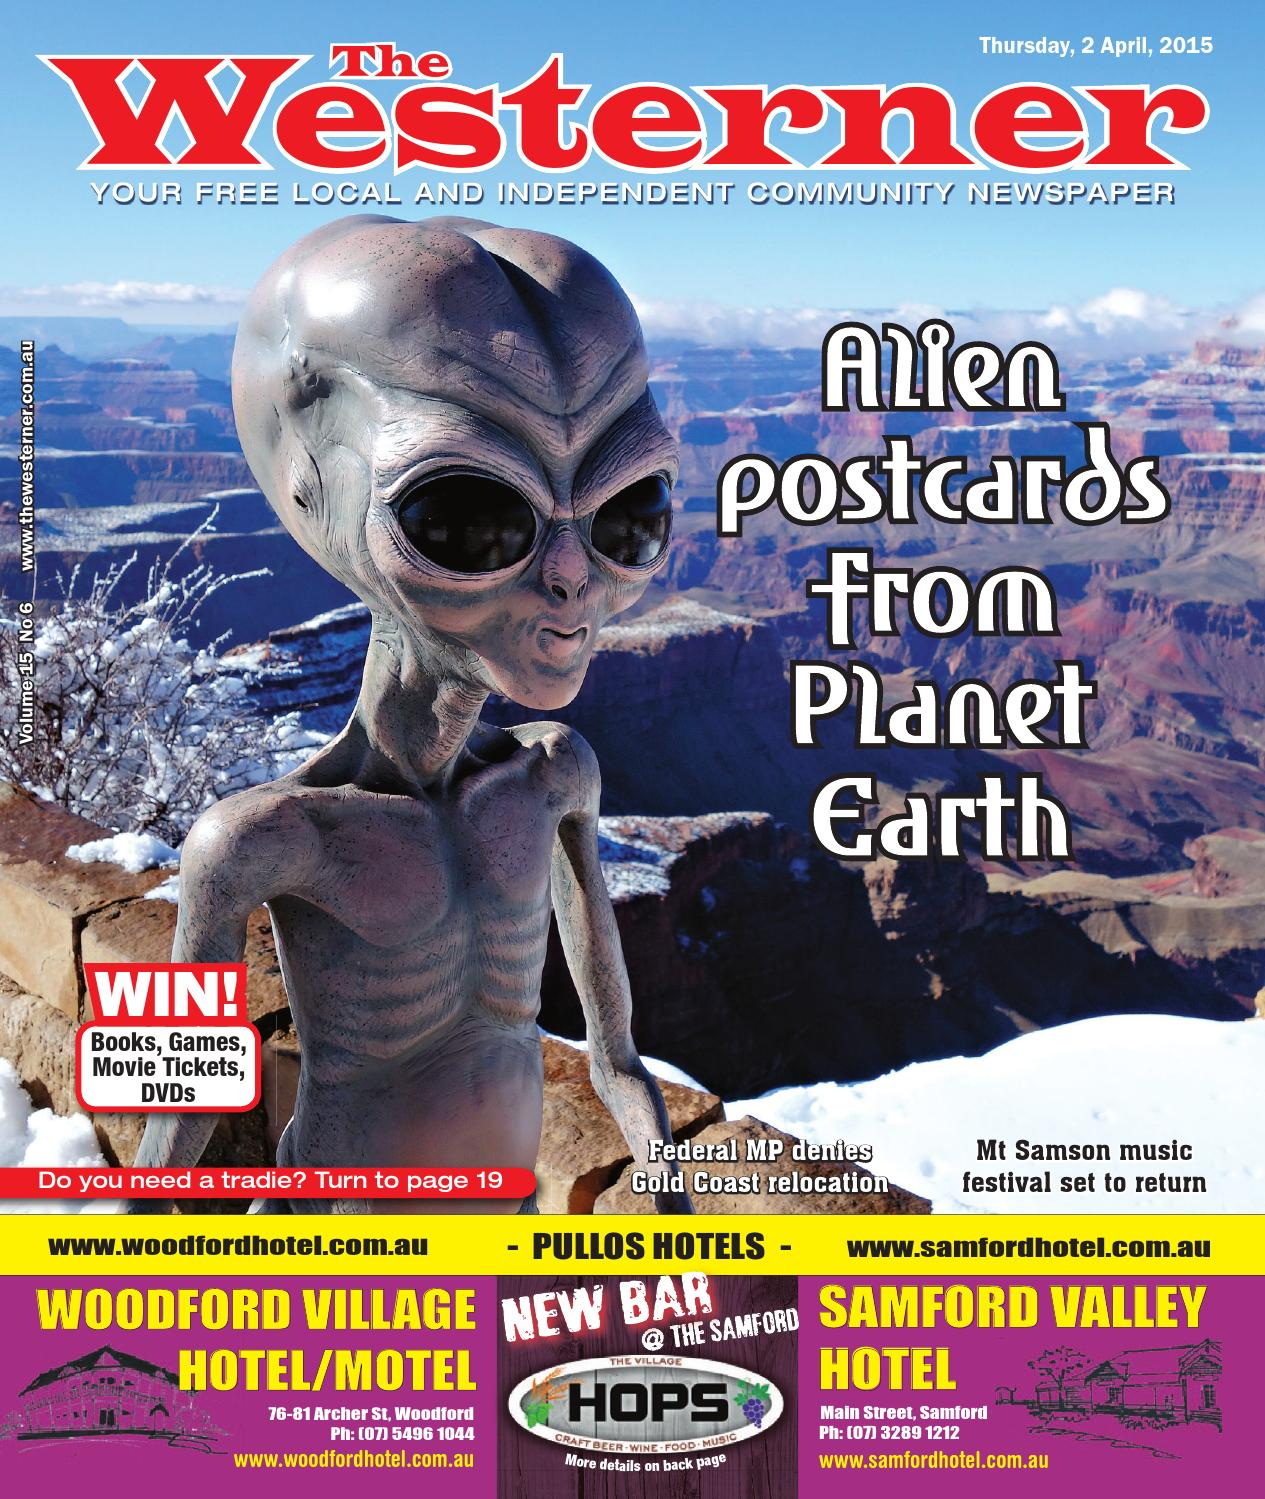 The Westerner, 2 April 2015 by The Westerner - issuu